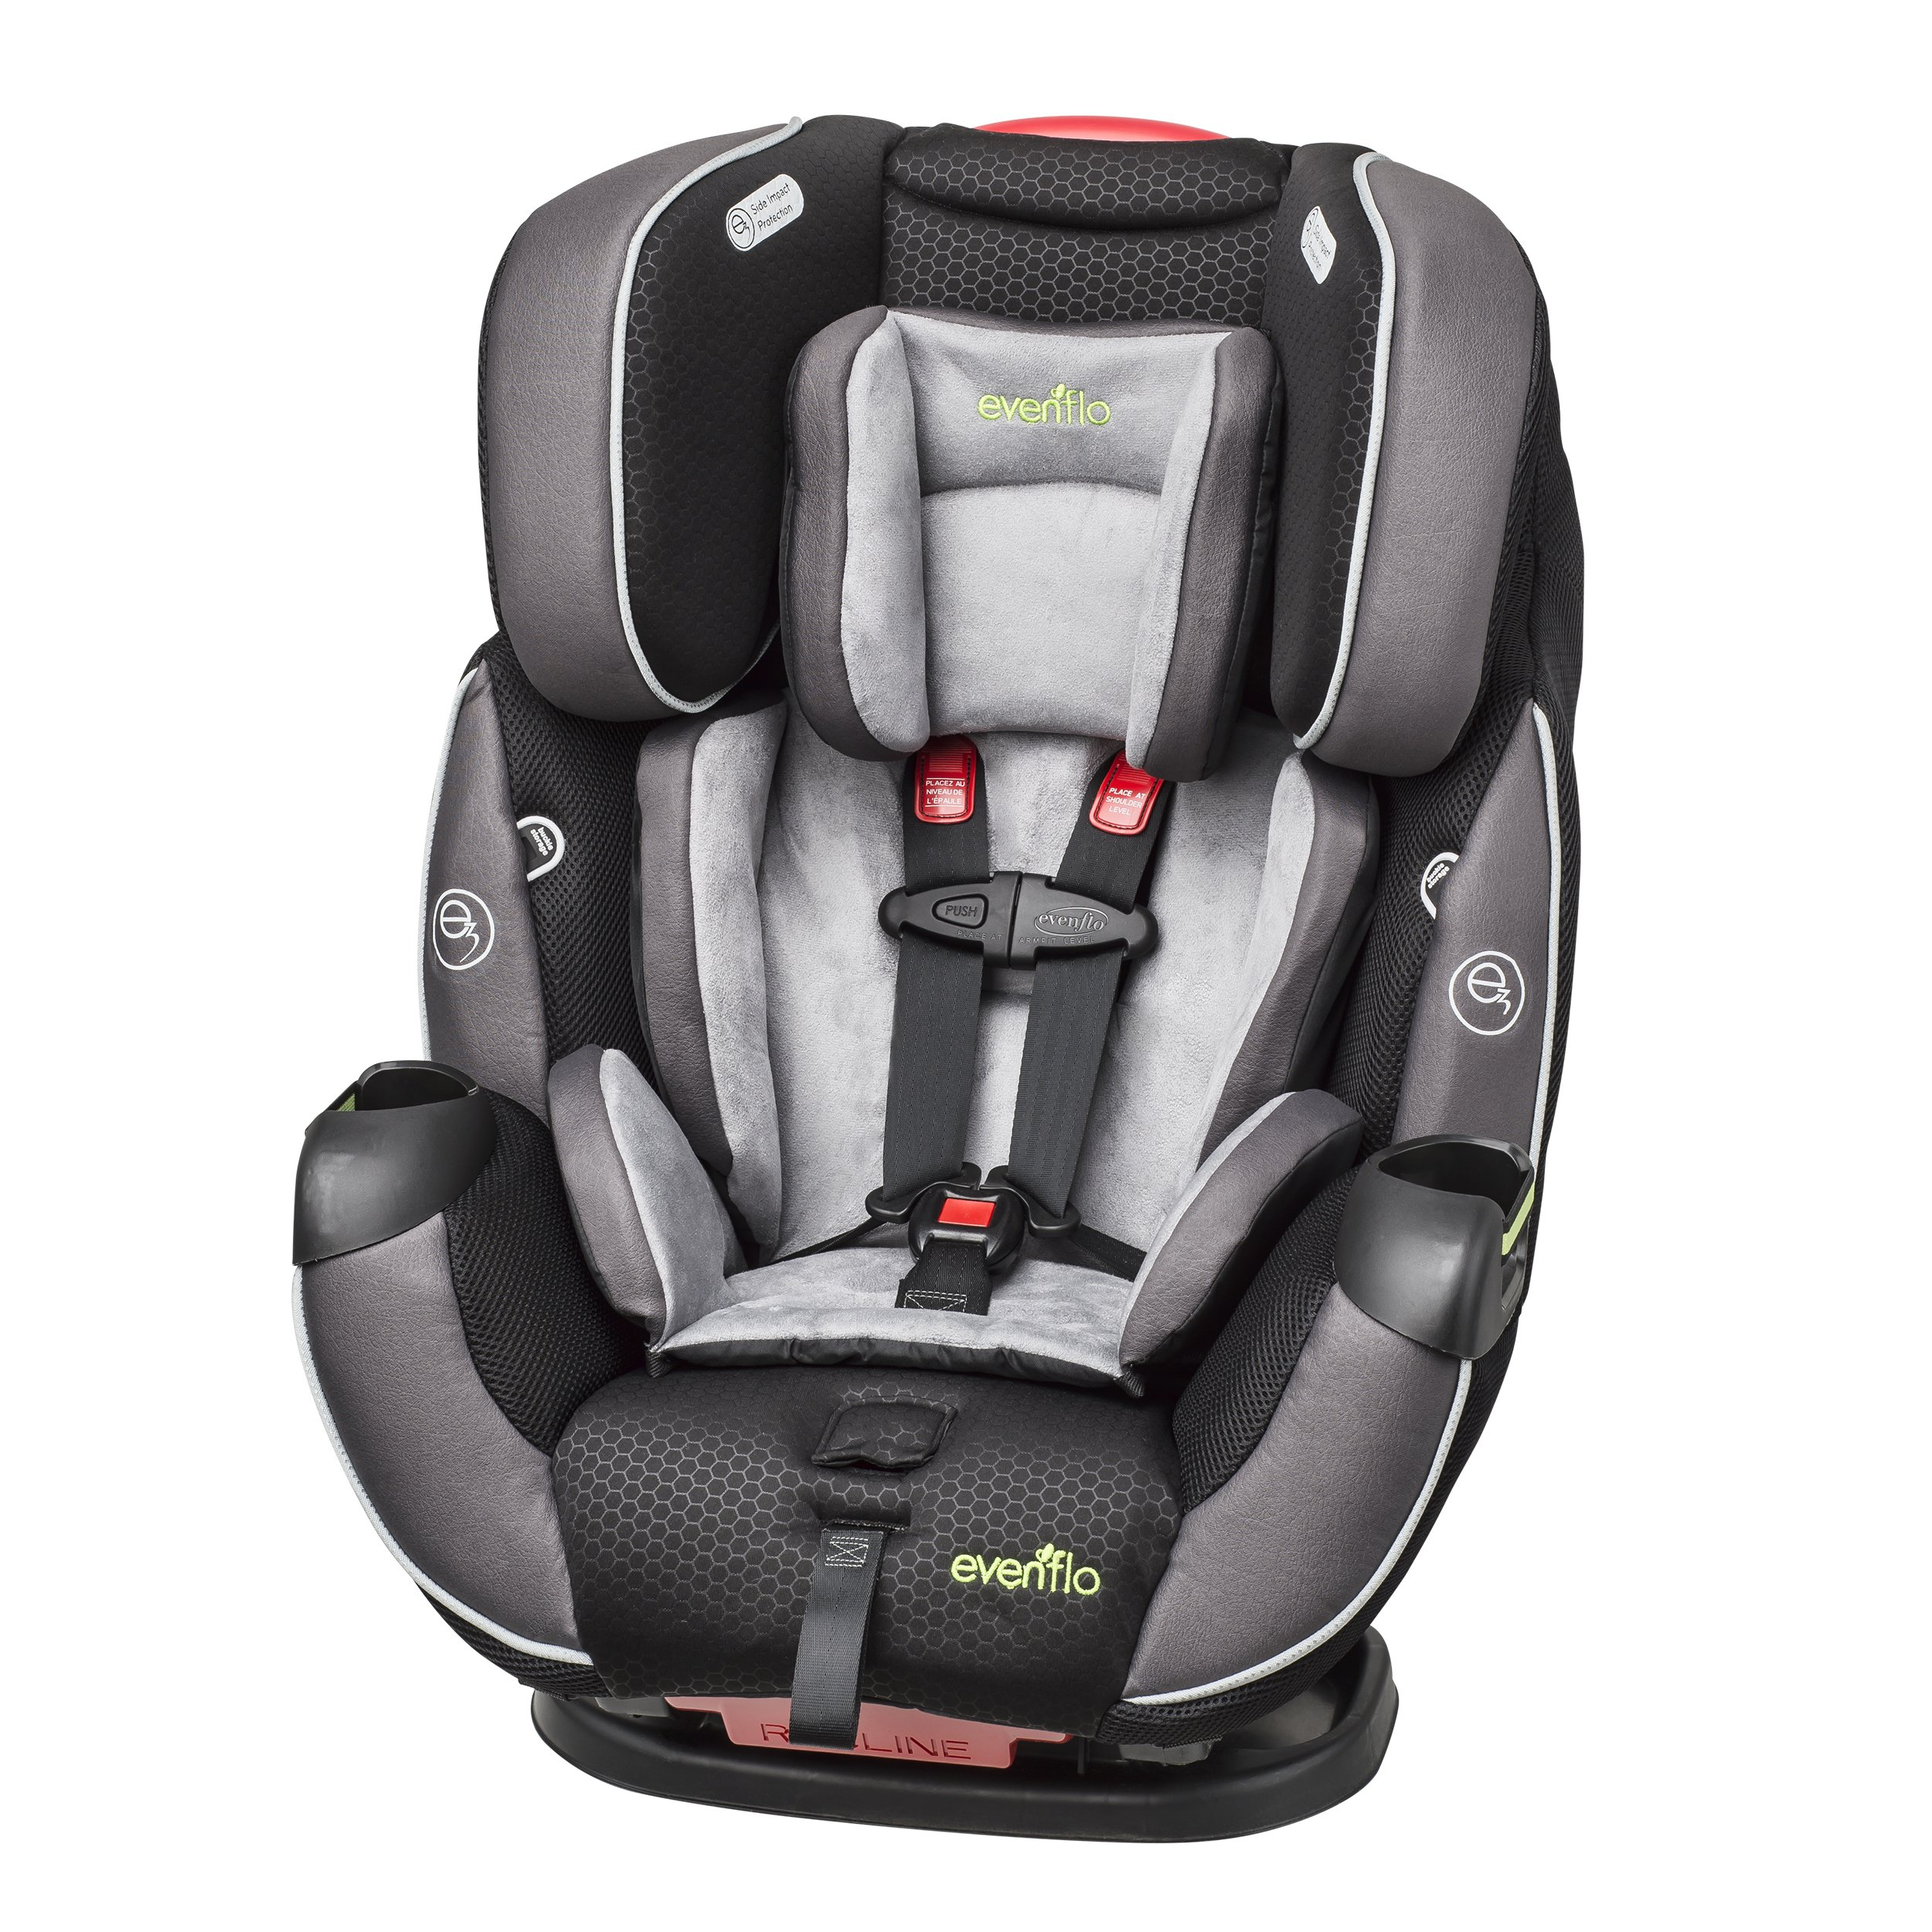 Amazon.com : Evenflo Symphony Convertible Car Seat, Porter : Baby